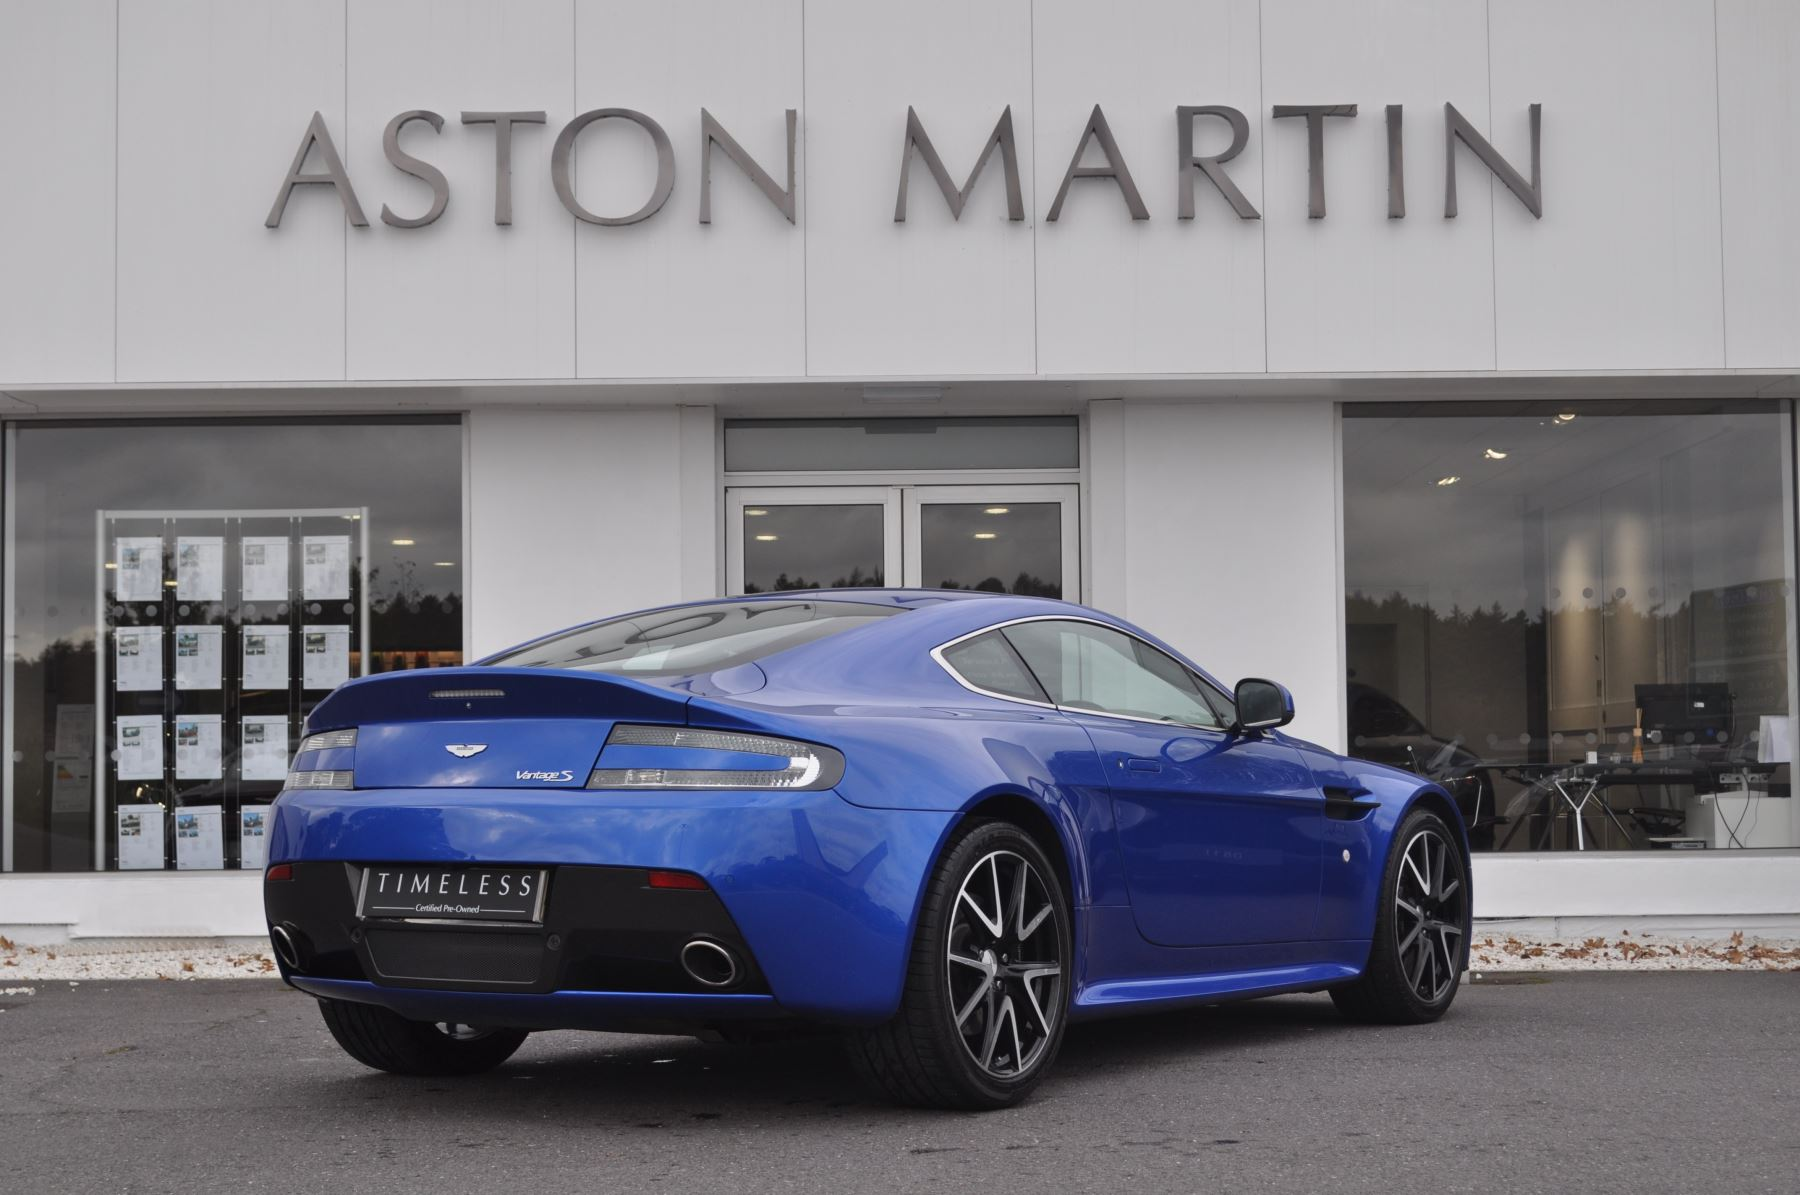 Aston Martin V Vantage S Coupe S Dr Sportshift Automatic - Aston martin certified pre owned